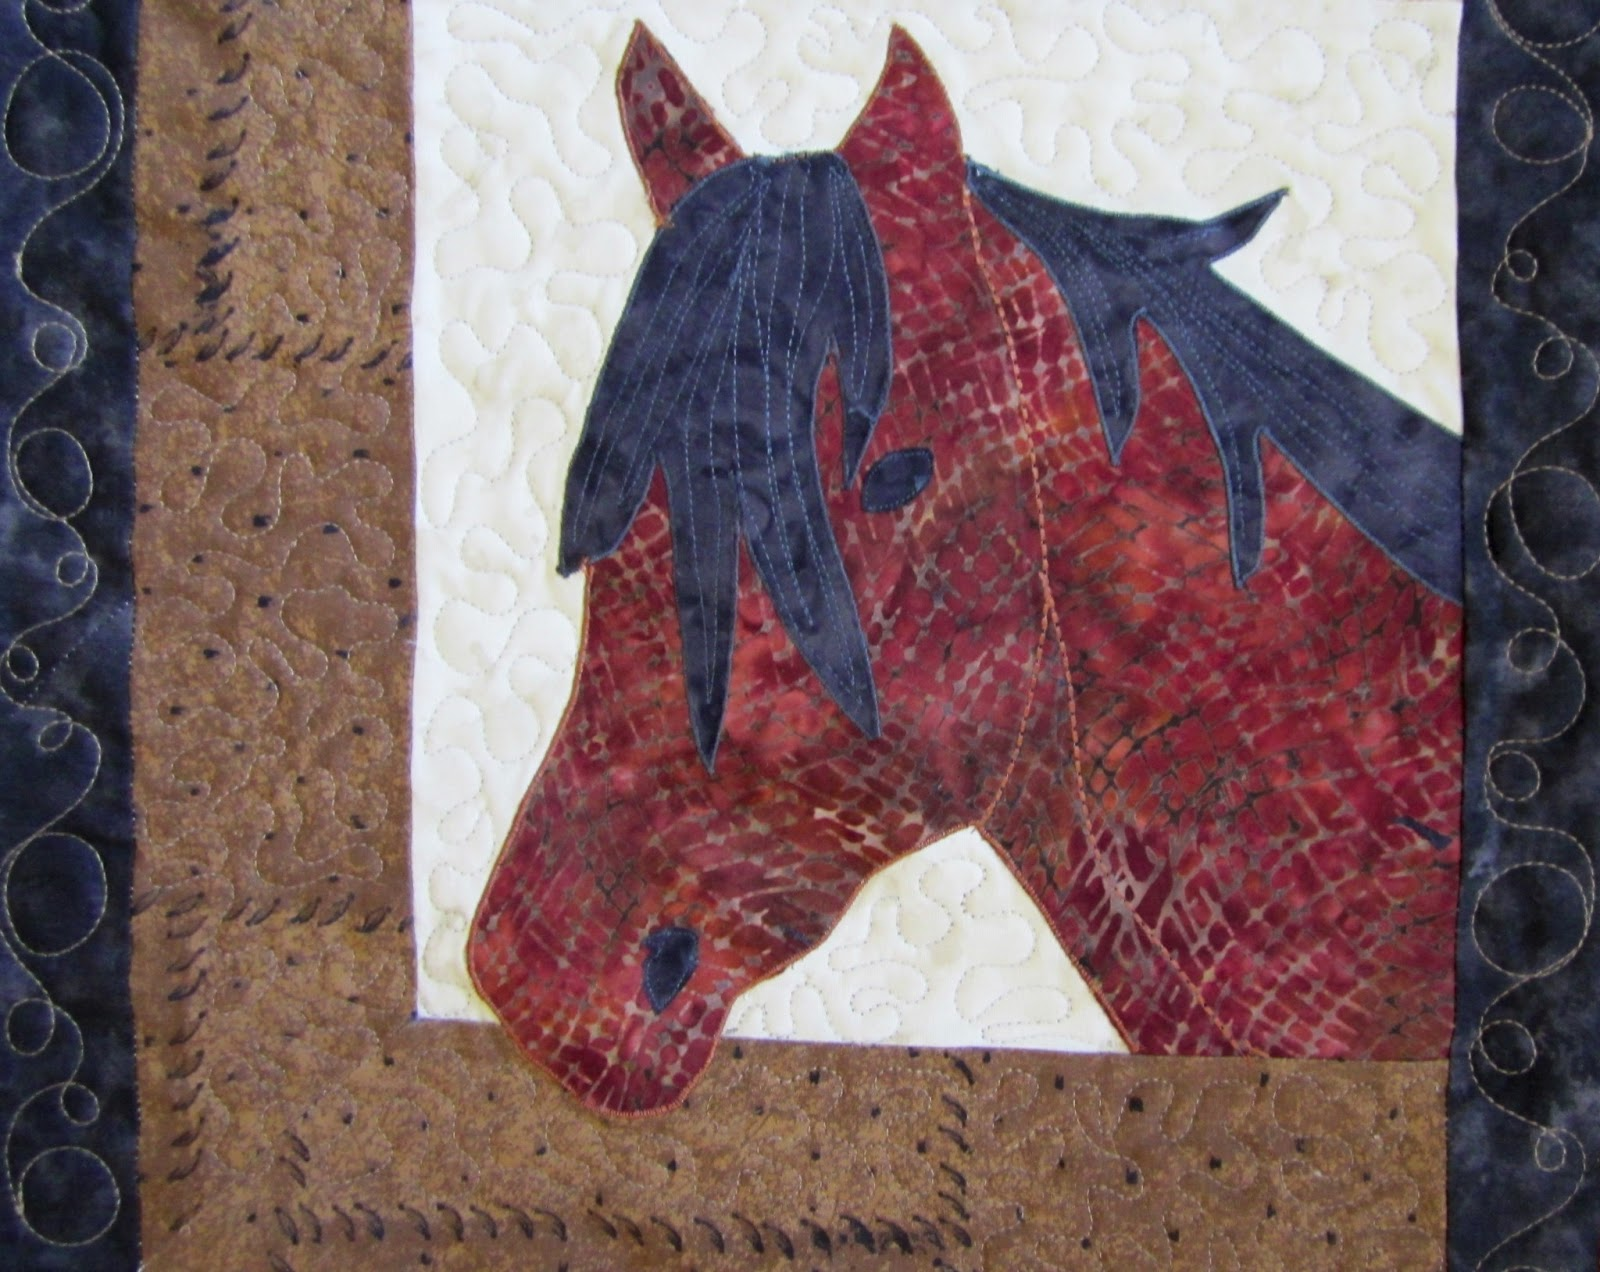 Quilt Patterns With Horses : Roberta s Custom Quilting: Horse Applique Quilt